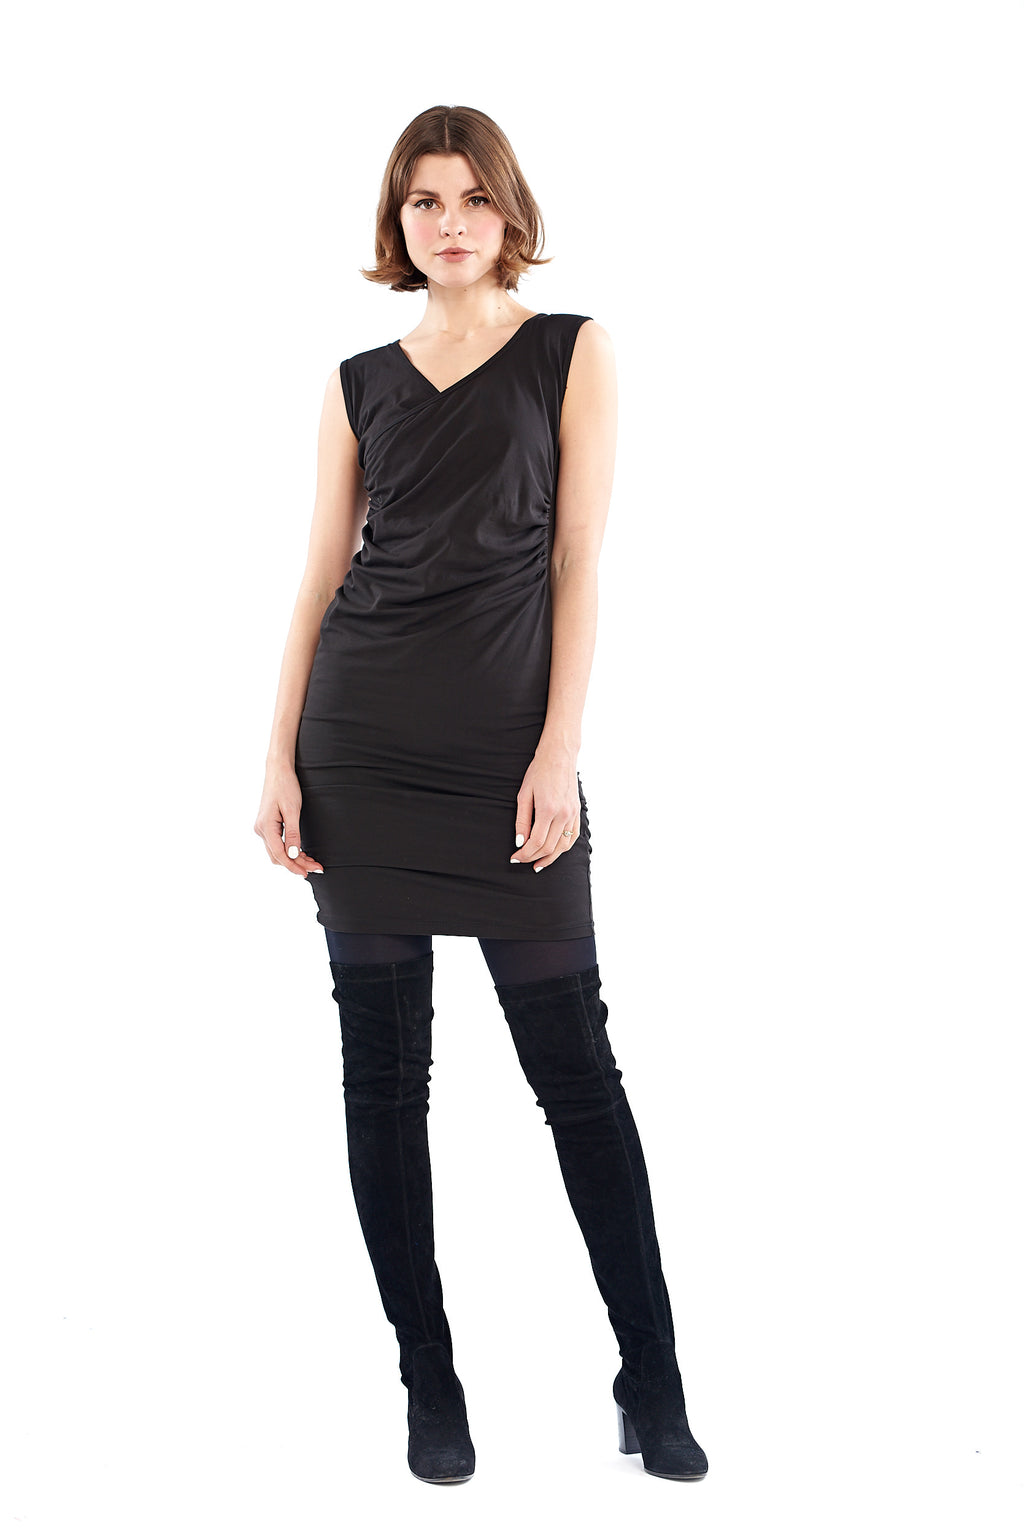 Organic Bamboo Crossover Dress Black - MUDRA